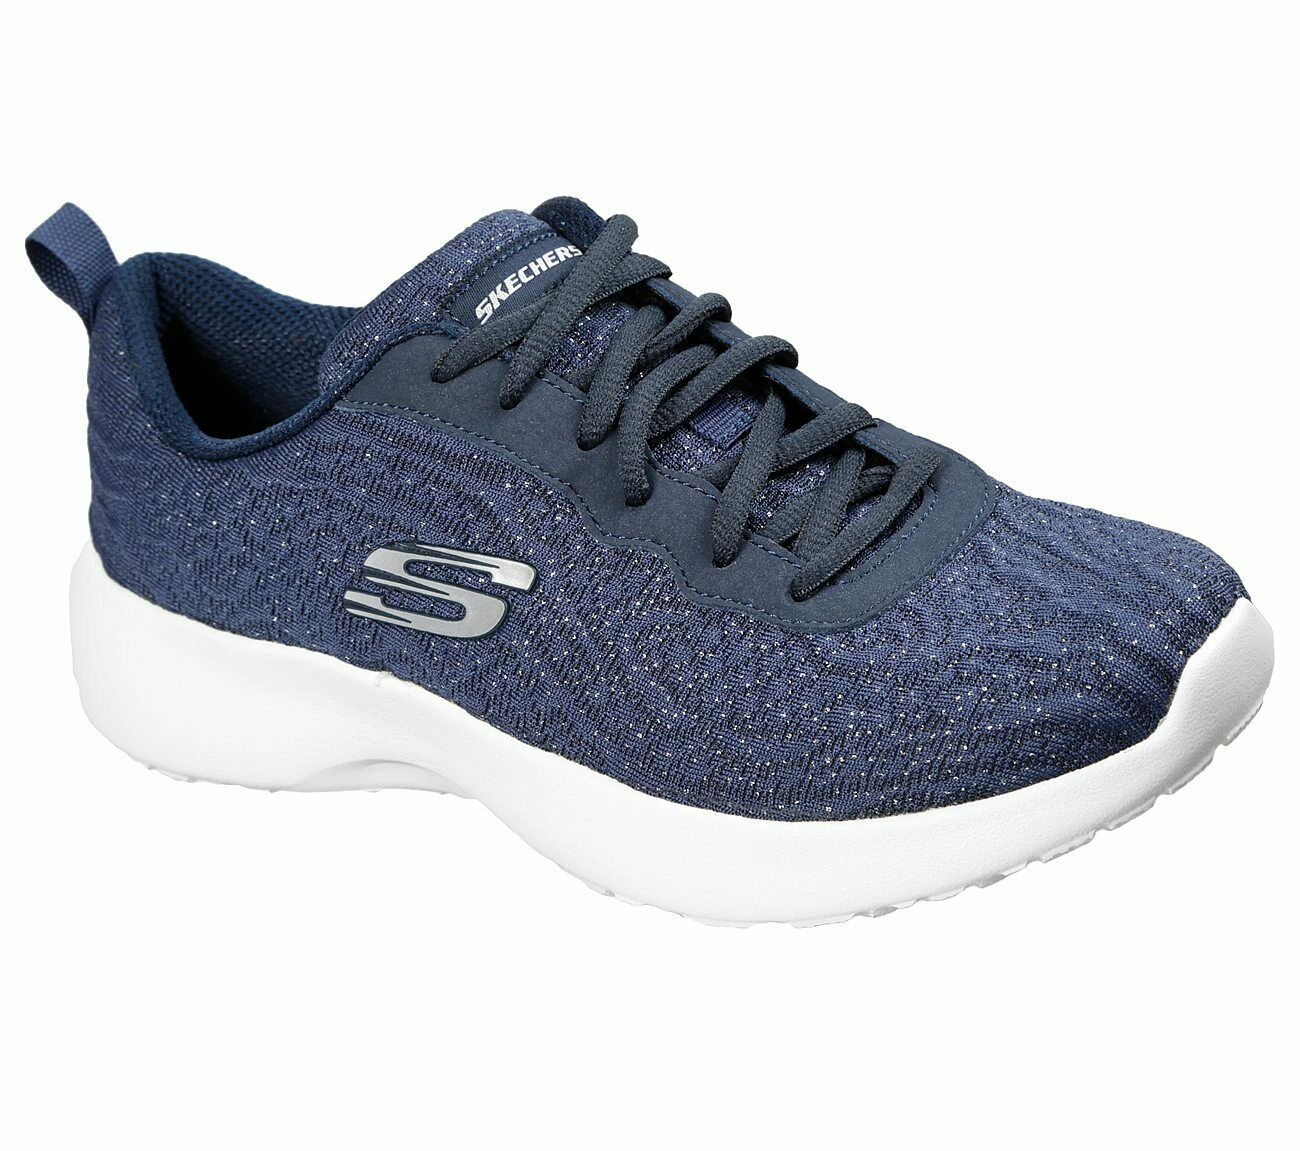 Details zu NEU SKECHERS Damen Sneakers DYNAMIGHT BLISSFUL Blau